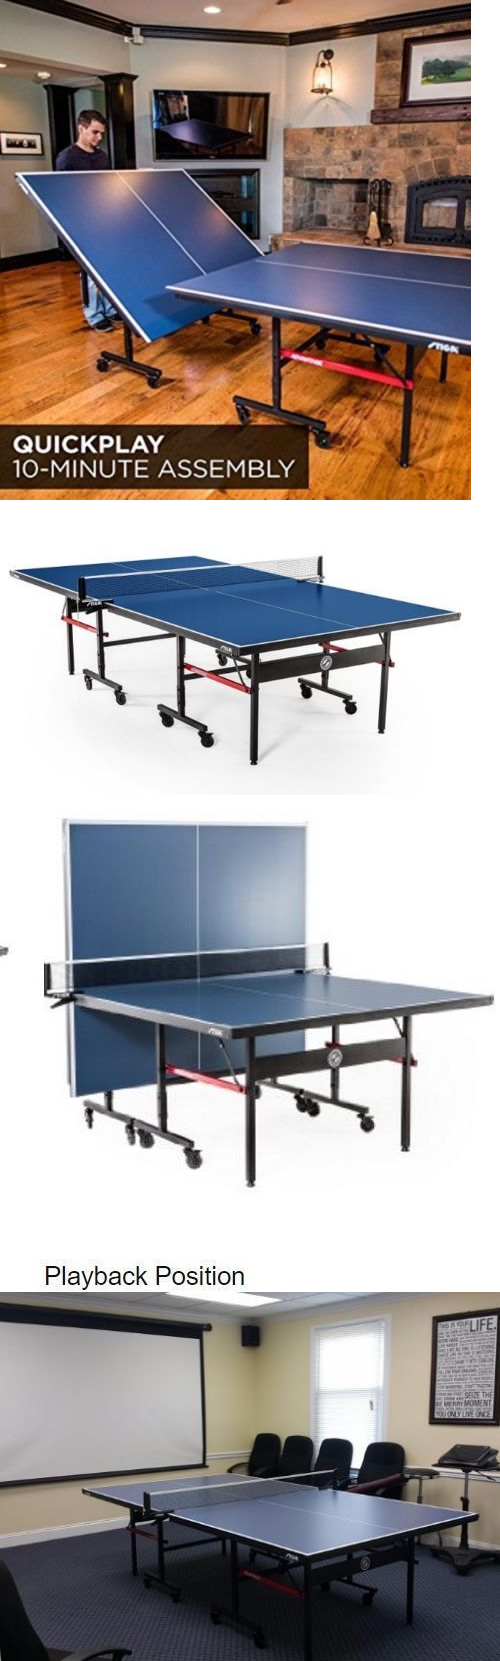 Paddles 36277: Ping Pong Table Tennis Games Portable Wheels Storage Regulation  Size Indoor  U003e